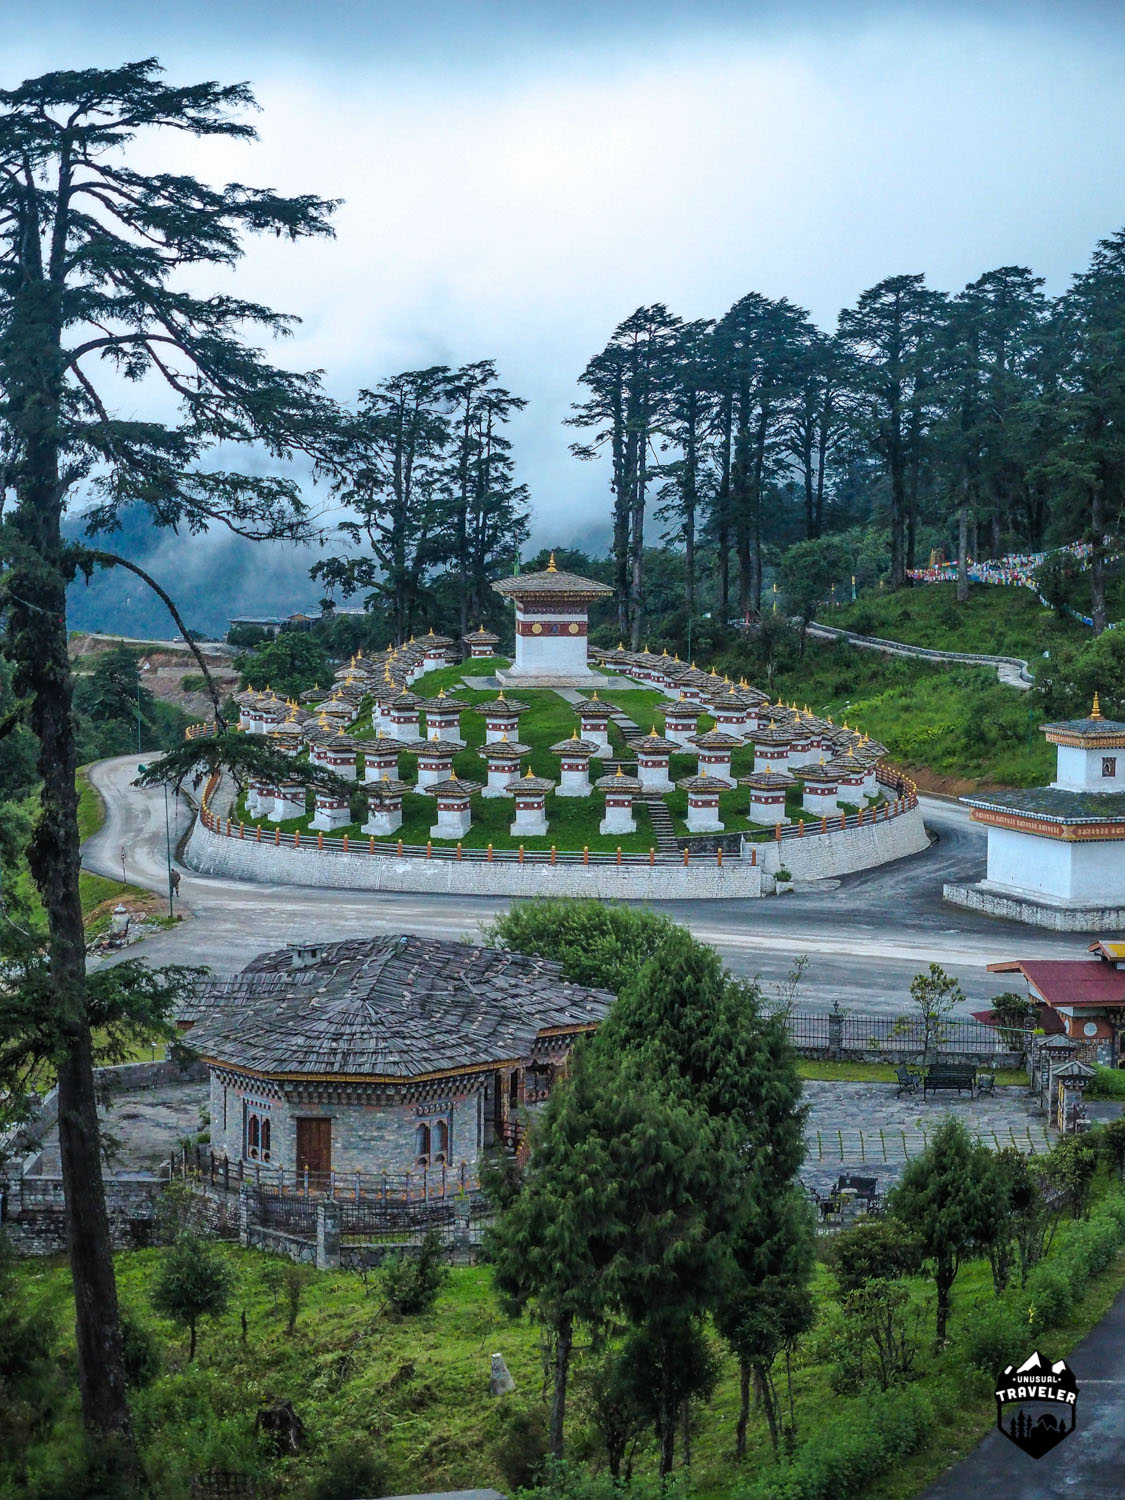 Dochula Pass is the at 3100m (10171ft) high mountain pass you will have to cross when traveling from Thimphu to the eastern part of Bhutan.